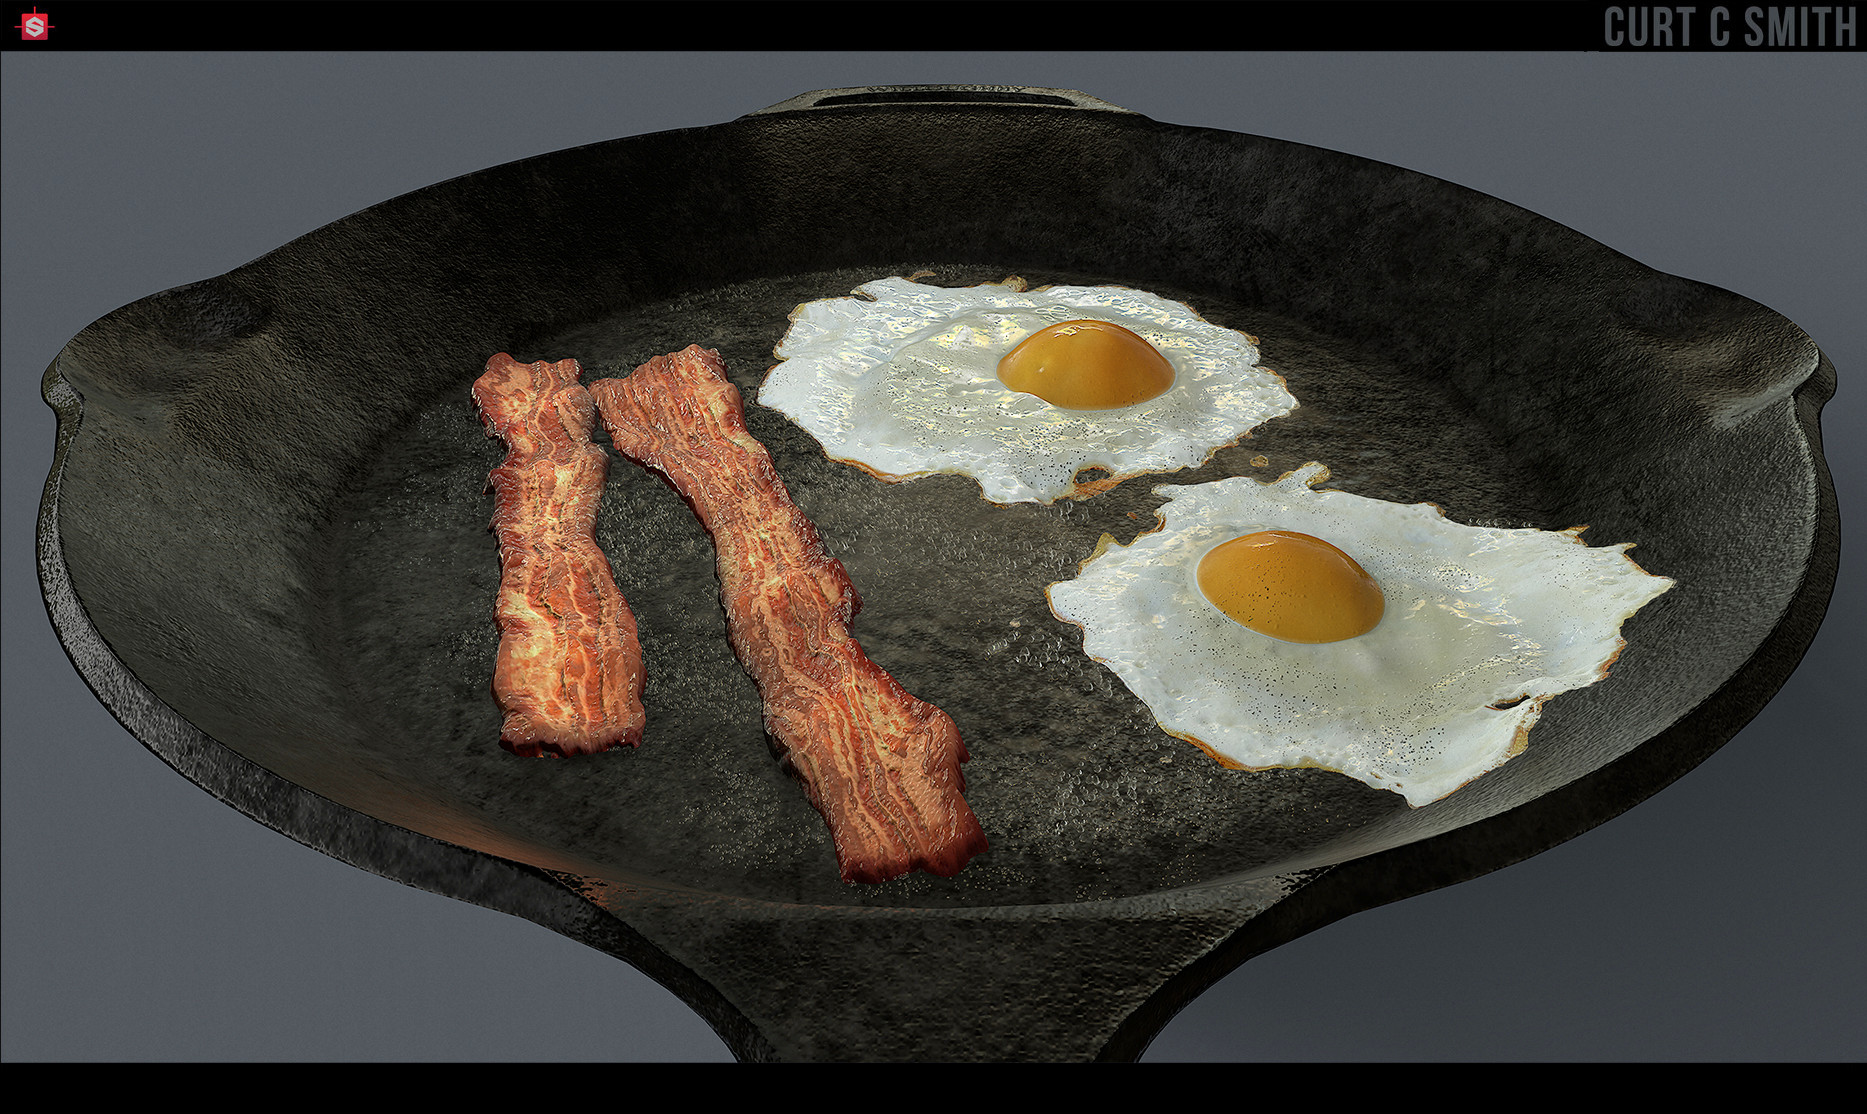 eggs and bacon are displaced from a plane.